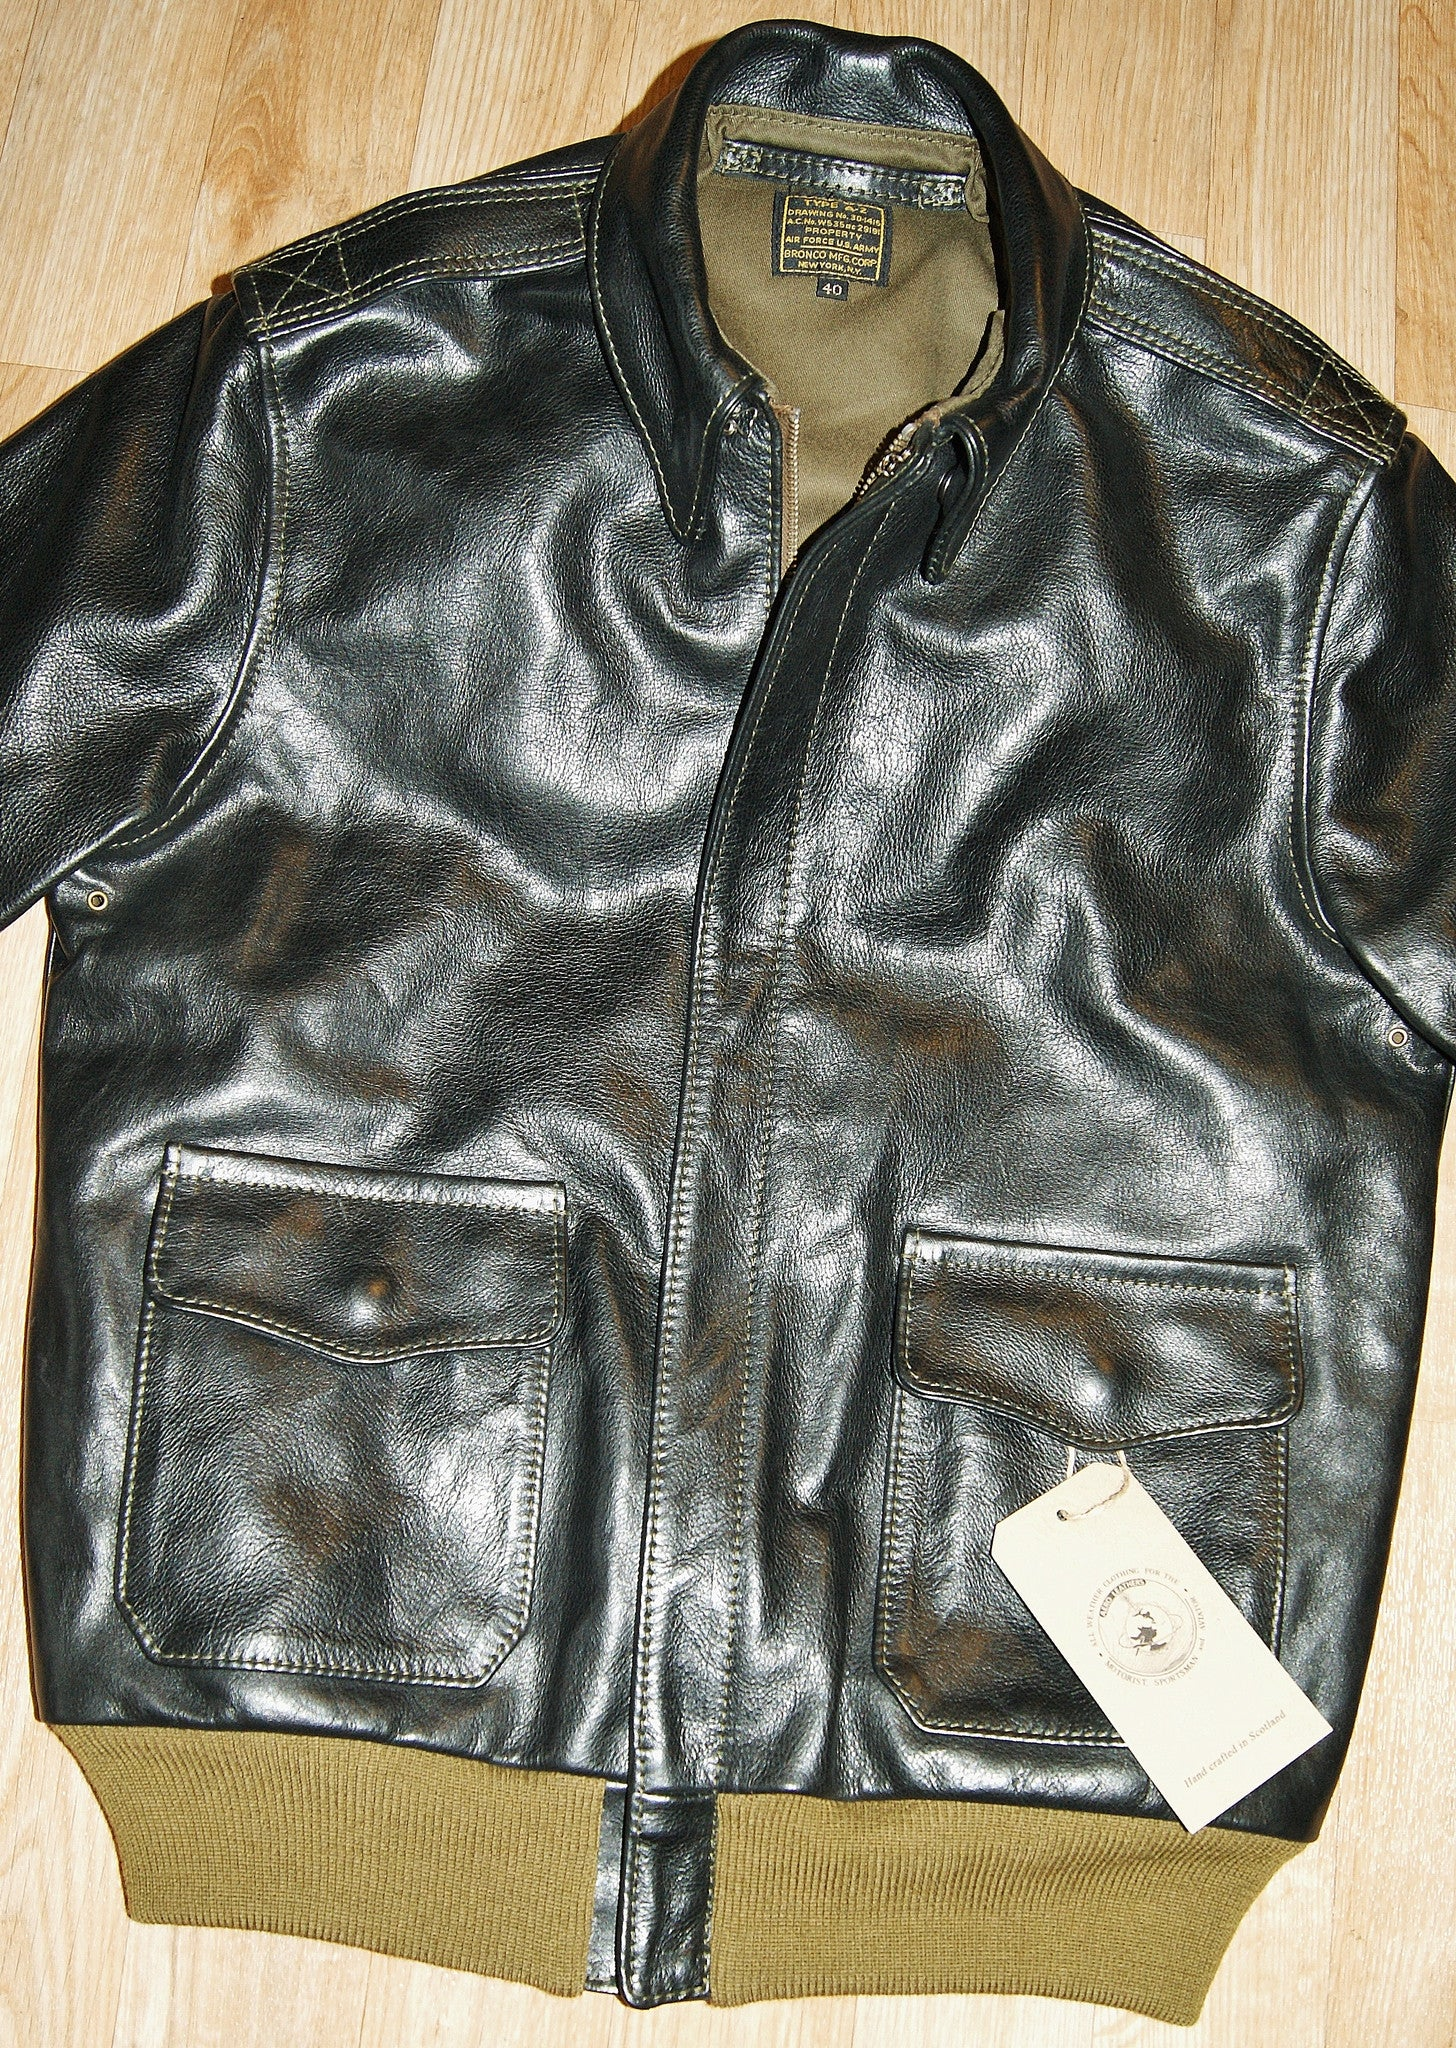 Aero A-2 Military Flight Jacket, size 40, Black Vicenza Horsehide